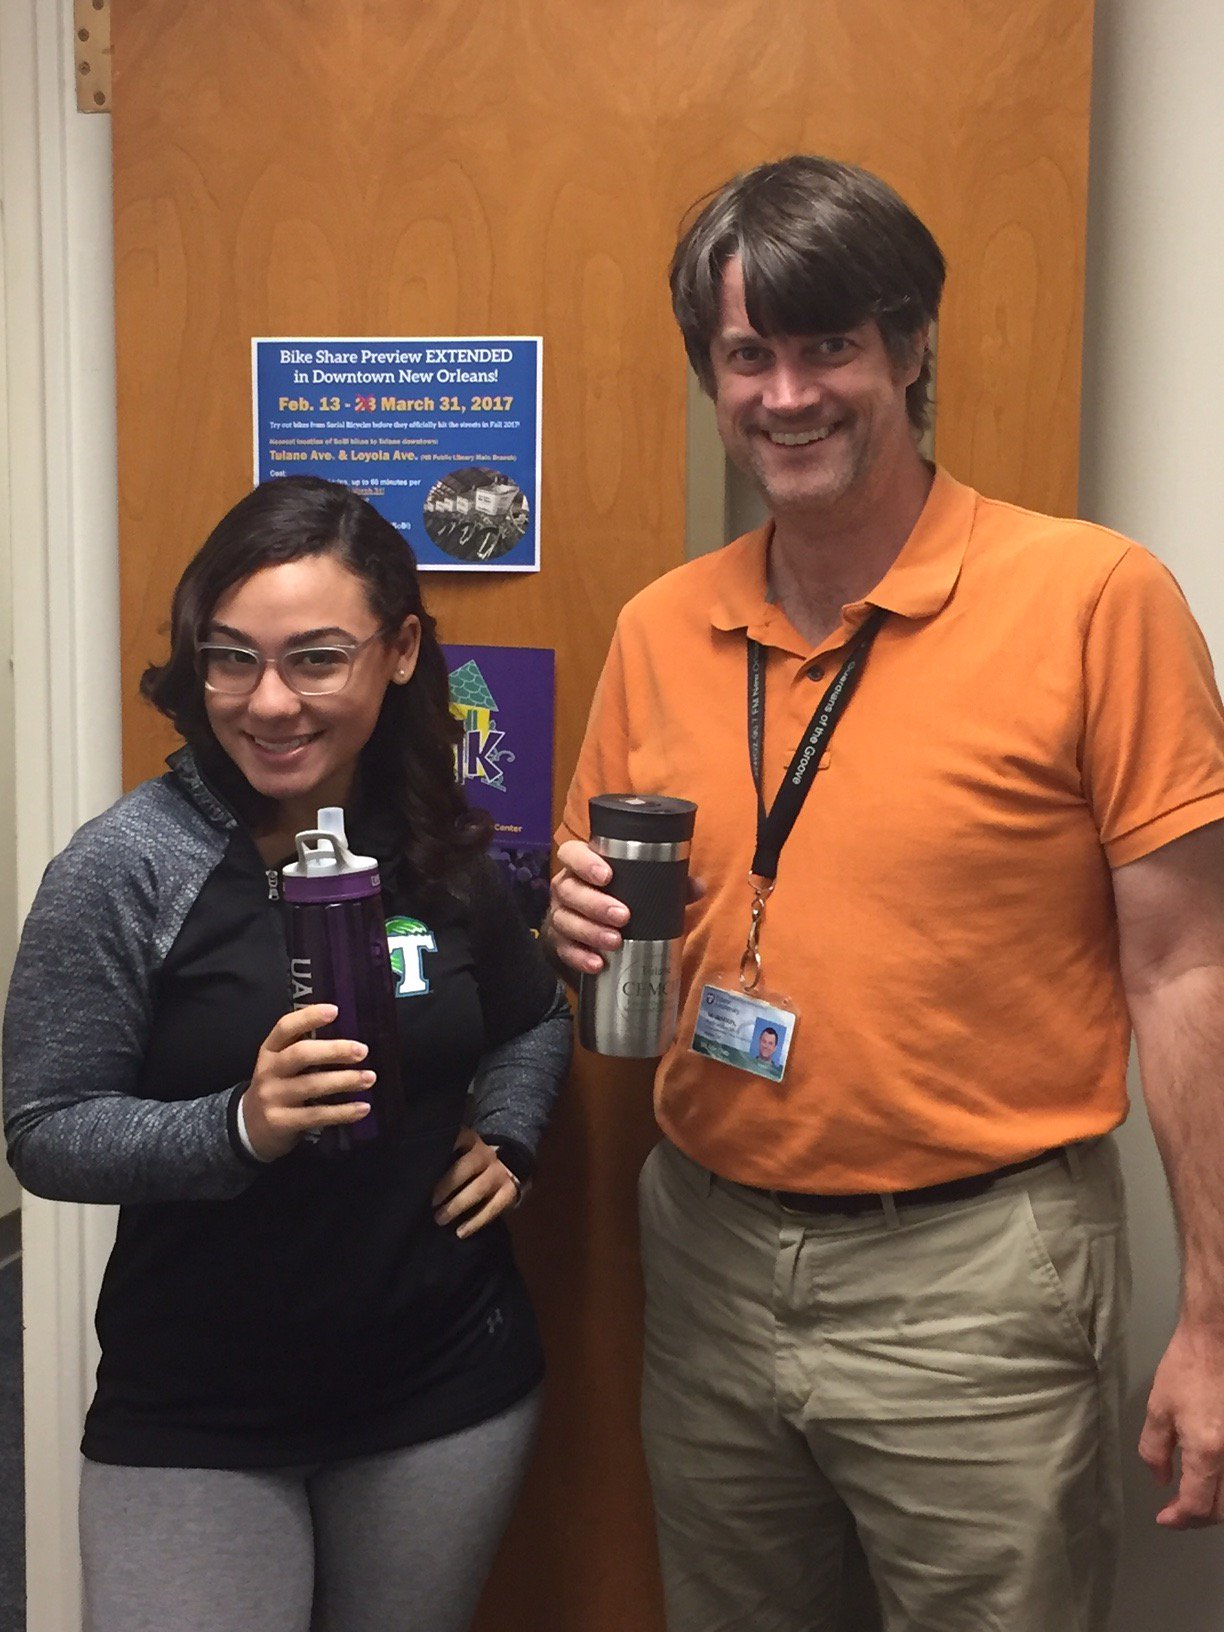 MCH students & staff use reusable water bottles to reduce waste! @MACWHEC how do you reduce waste? Post a pic & tag a friend!#tulanerecycles https://t.co/nhr06mUvsH